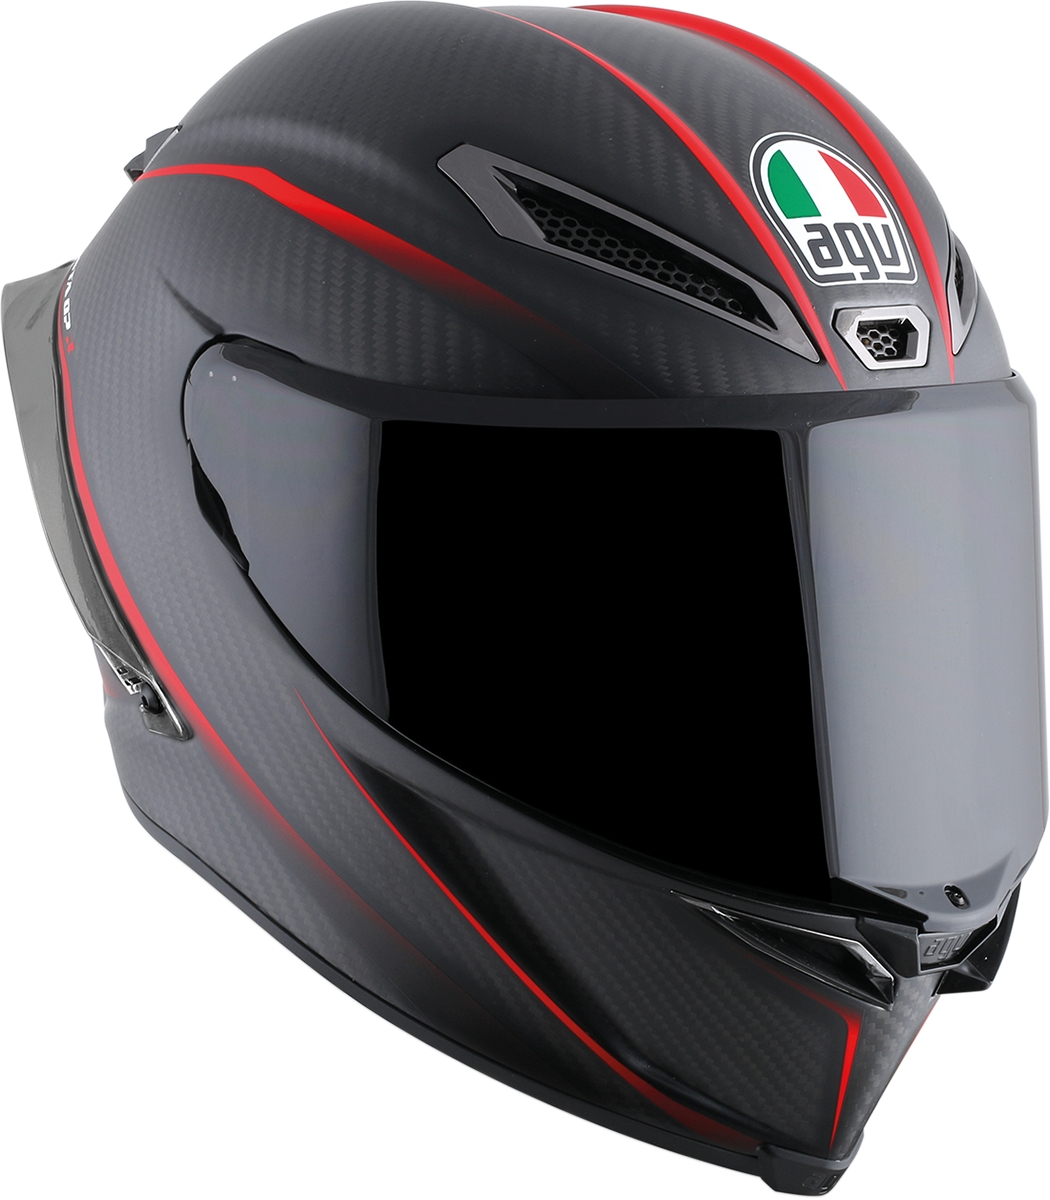 Pista GP-10 IT Helmet